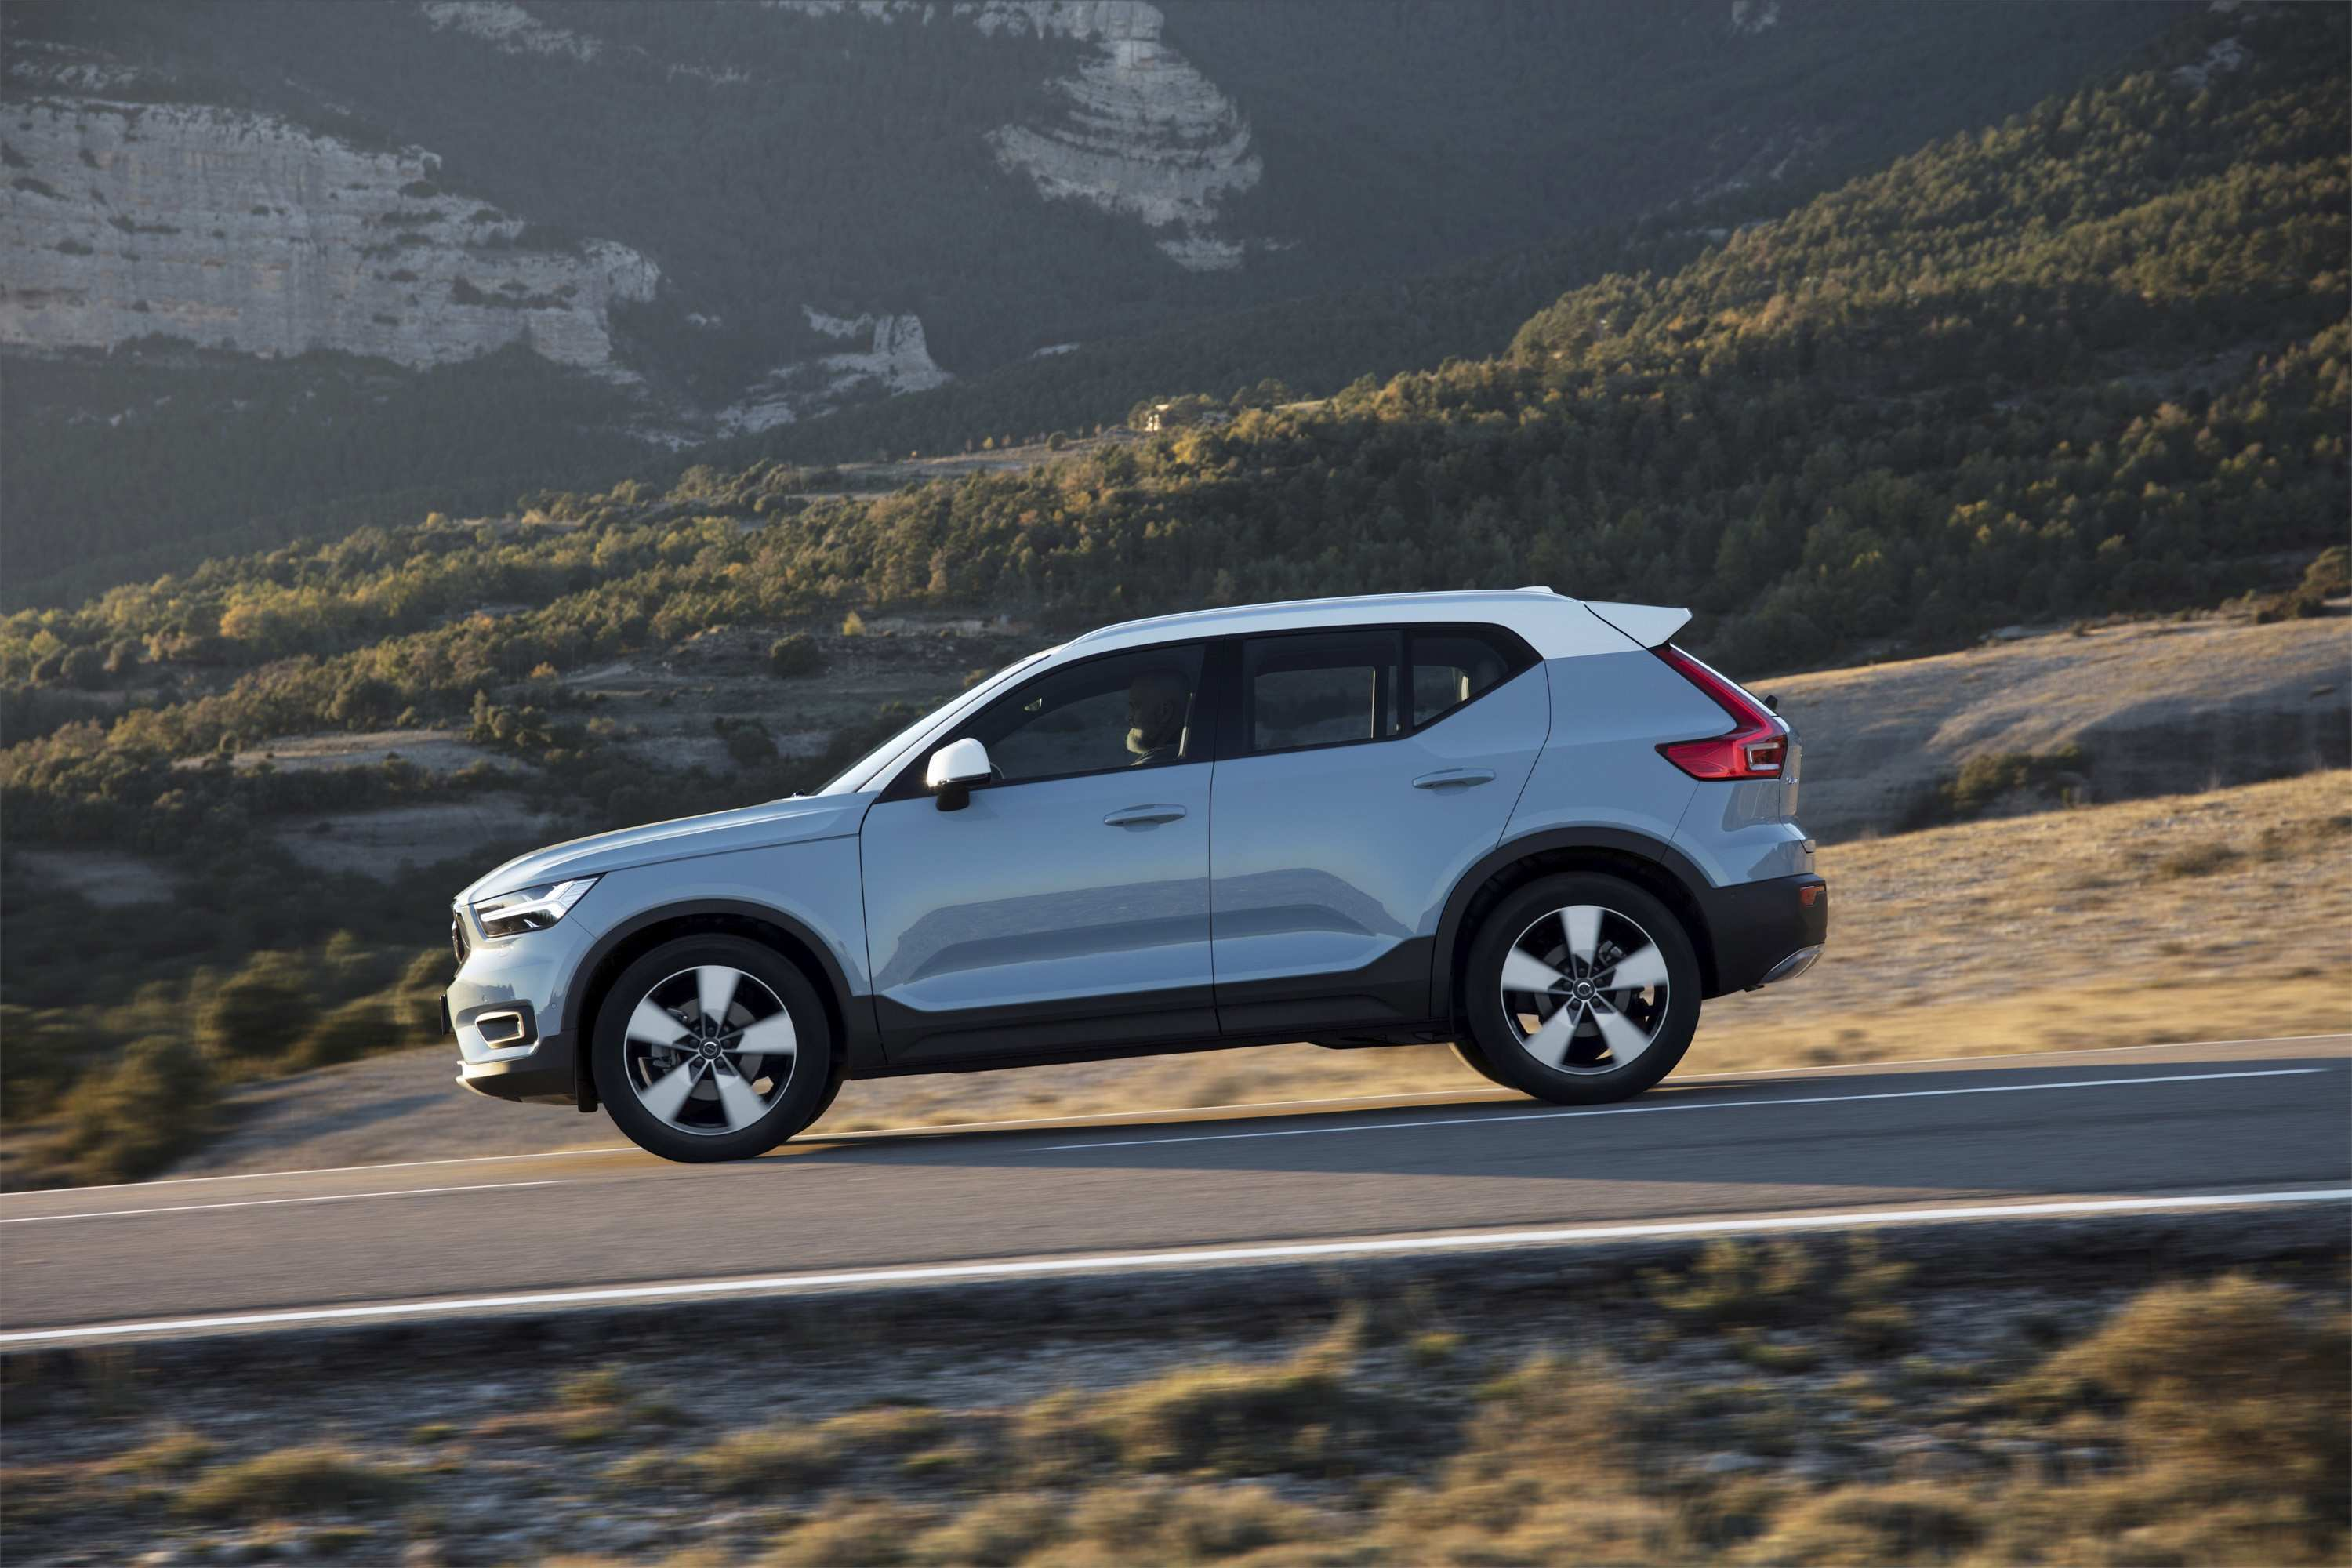 88 Best Review Volvo Xc40 Dimensions 2020 Picture by Volvo Xc40 Dimensions 2020